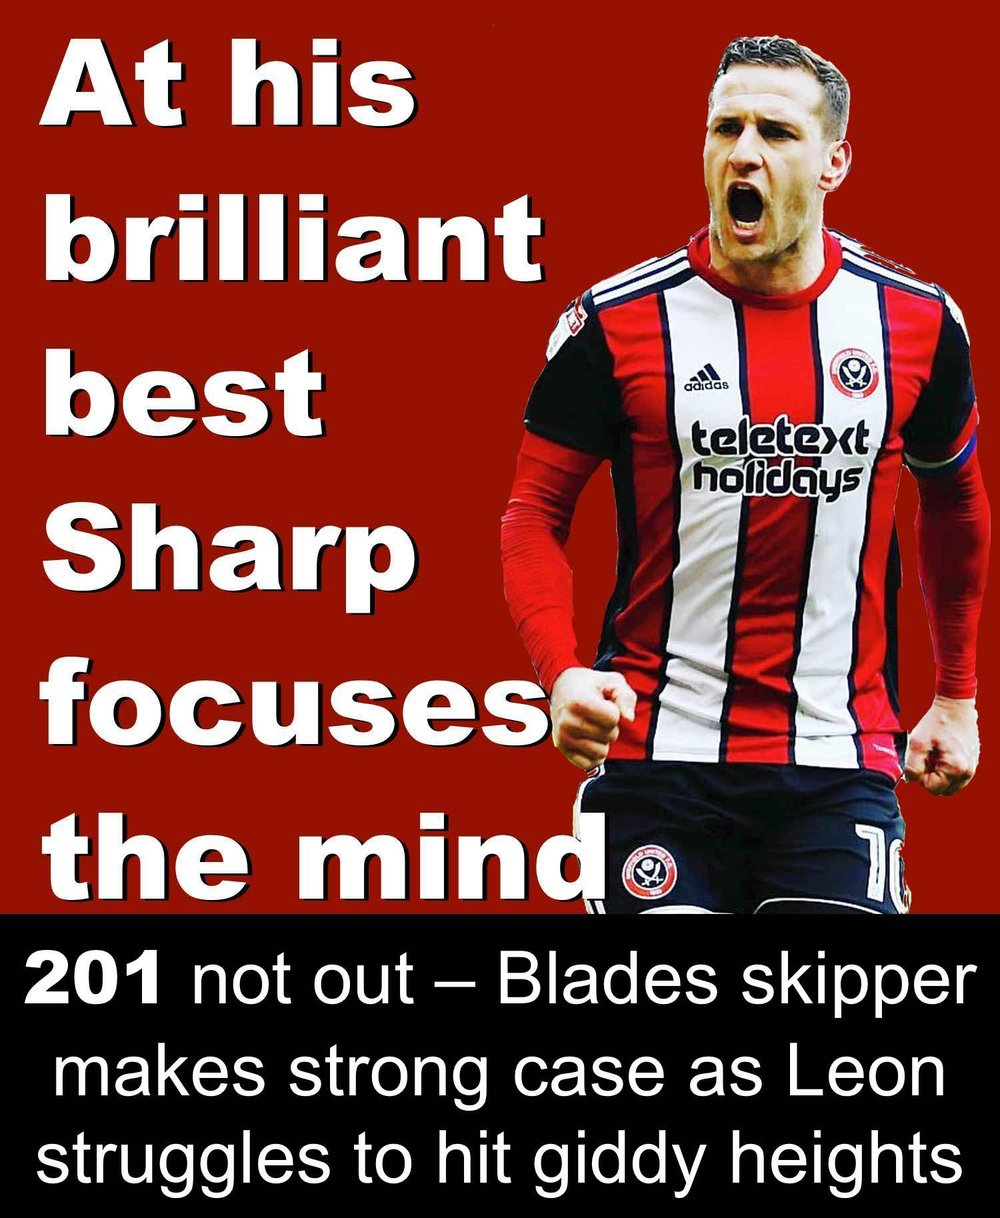 Sheffield United striker Billy Sharp at brilliant best gives Bramall Lane boss Chris Wilder plenty to think about